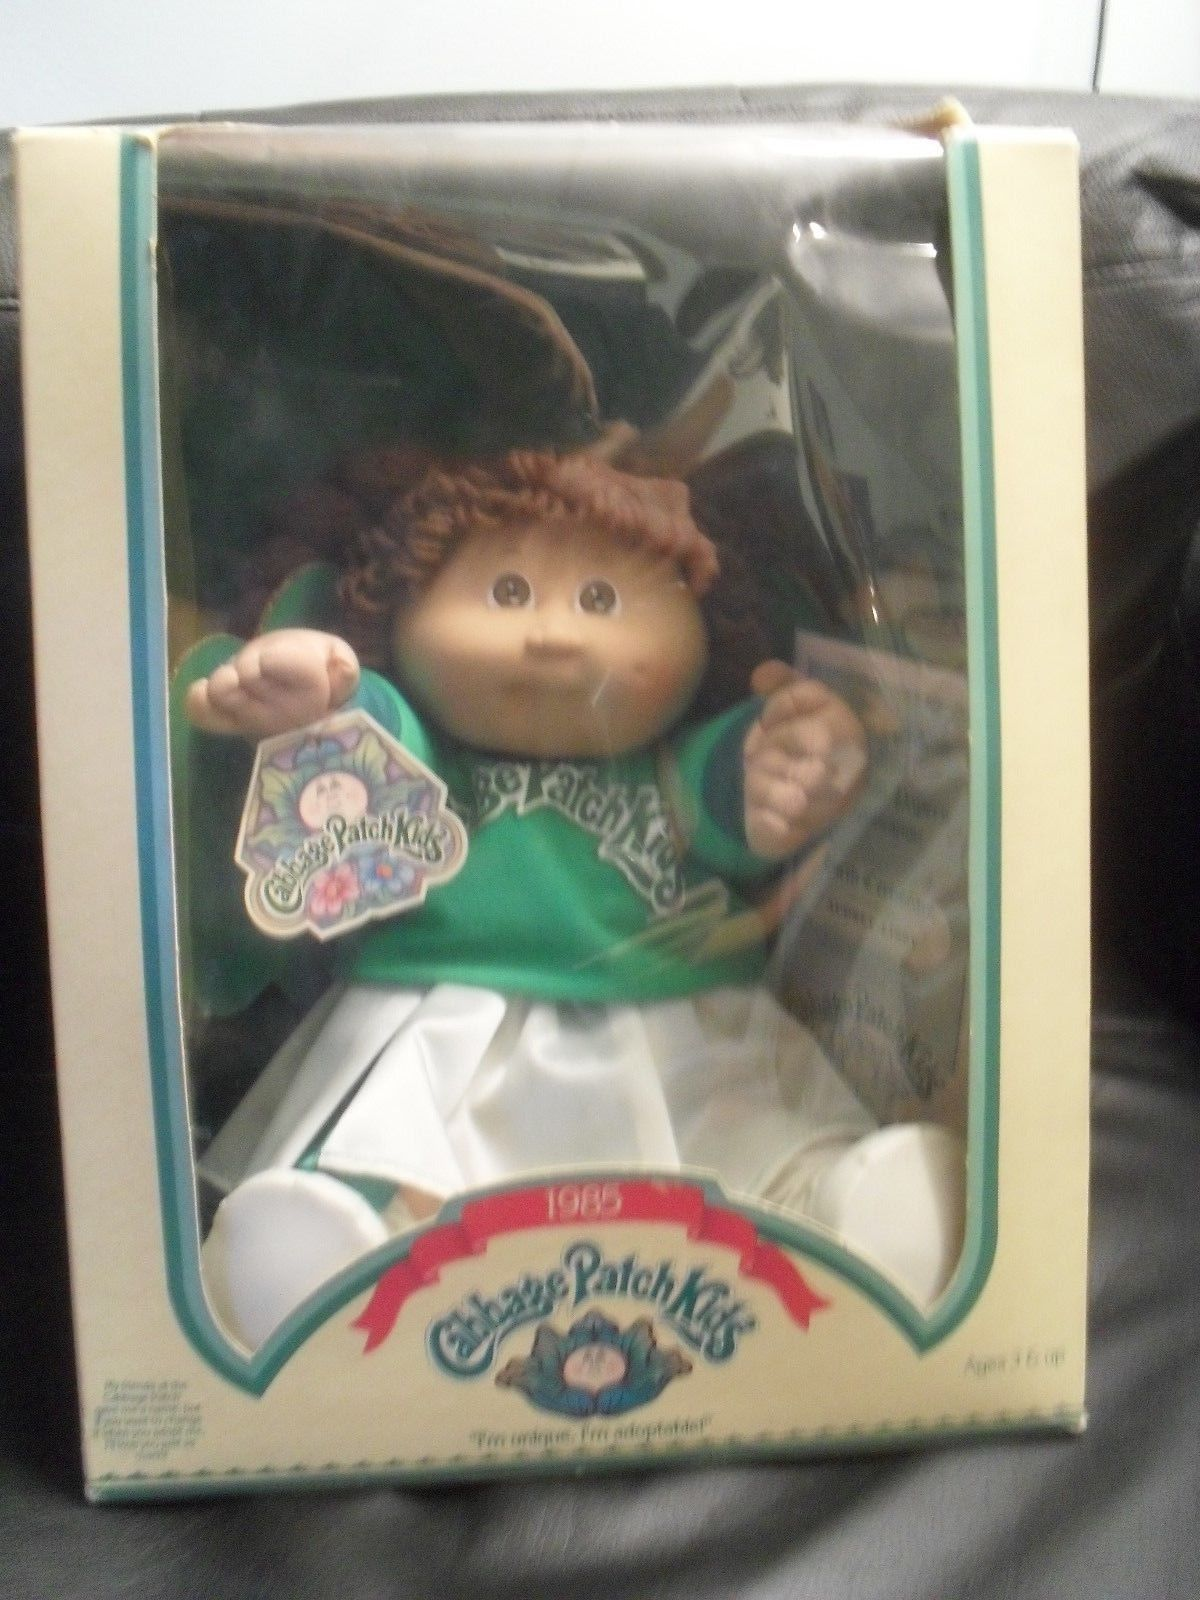 Cabbage Patch Kids Doll In The Box 1985 Cheerleader Ebay Cabbage Patch Kids Dolls Cabbage Patch Kids Cabbage Patch Dolls